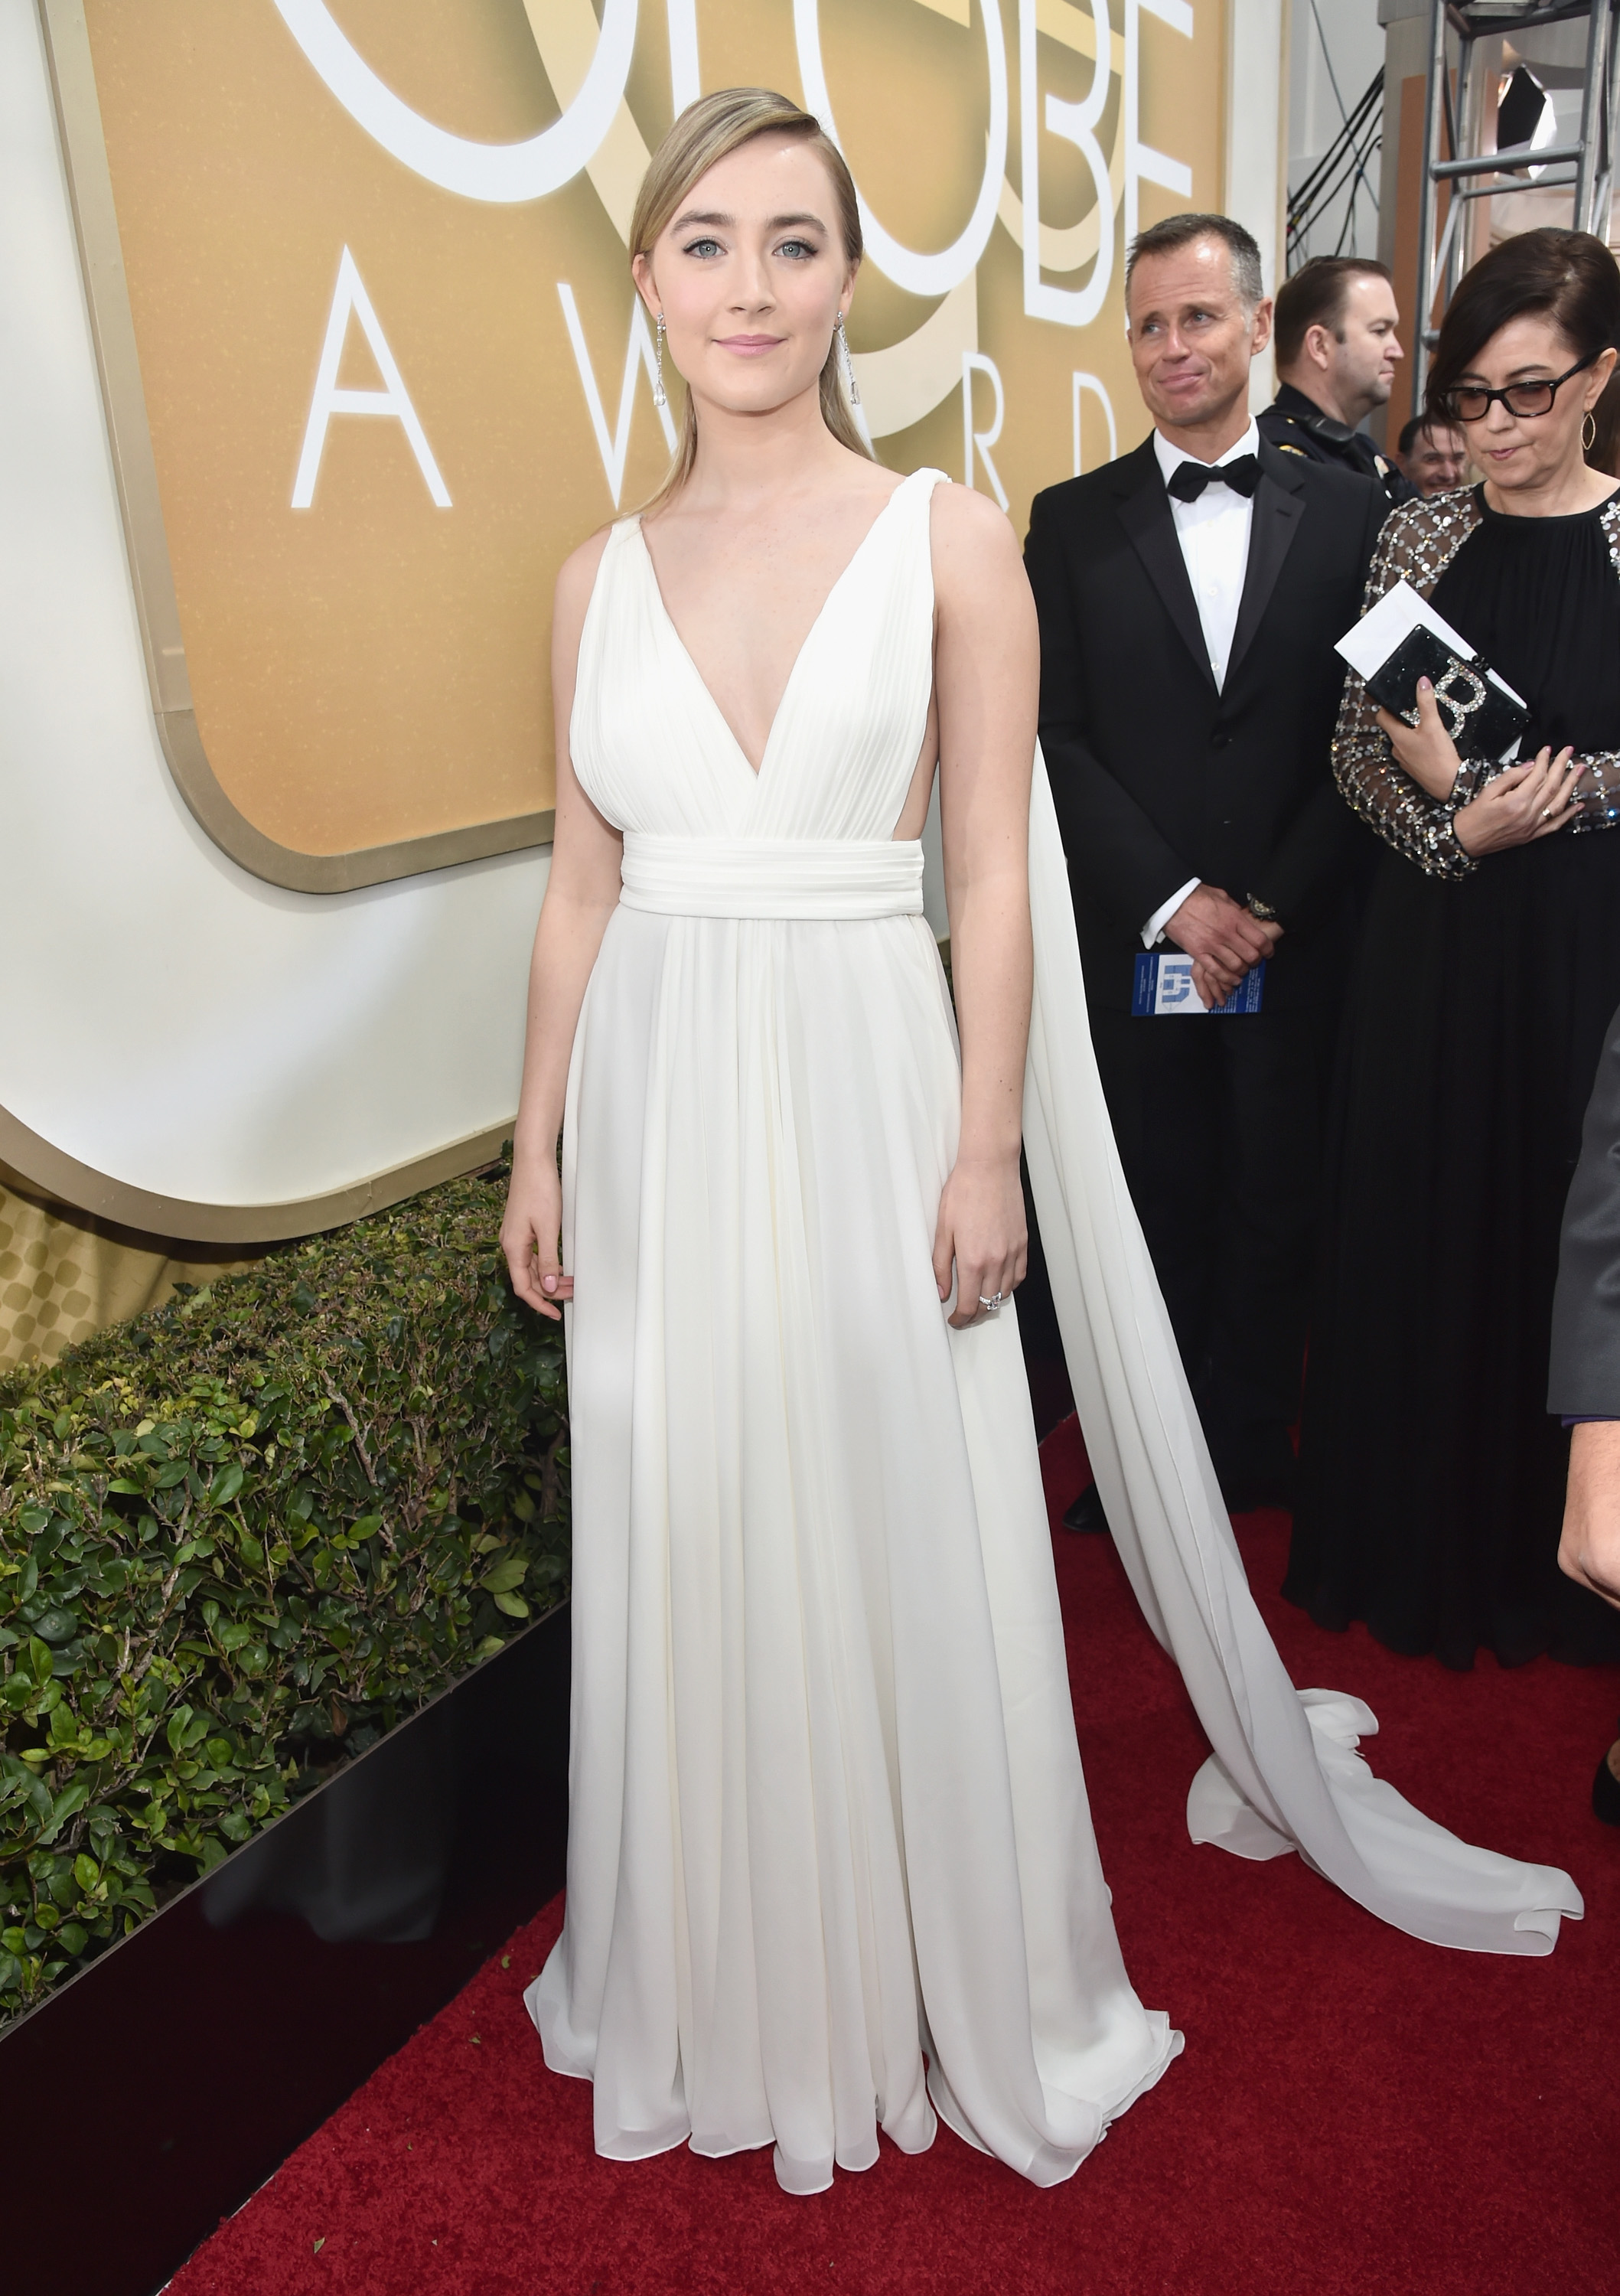 Saoirse Ronan arrives to the 73rd Annual Golden Globe Awards on Jan. 10, 2016 in Beverly Hills.